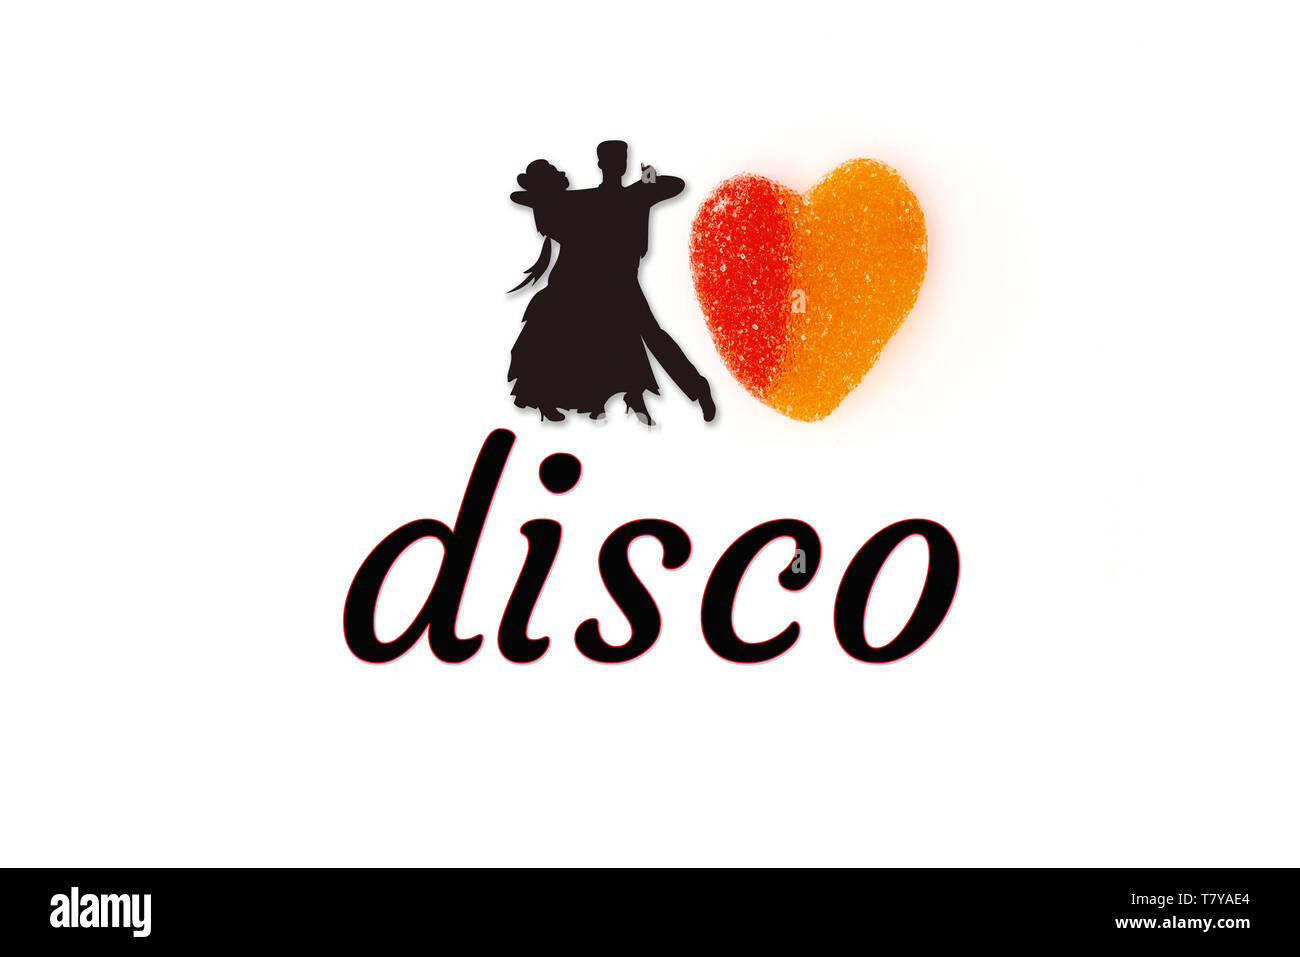 I love disco with the black silhouette of the dancing couple and the sweet heart - Stock Image